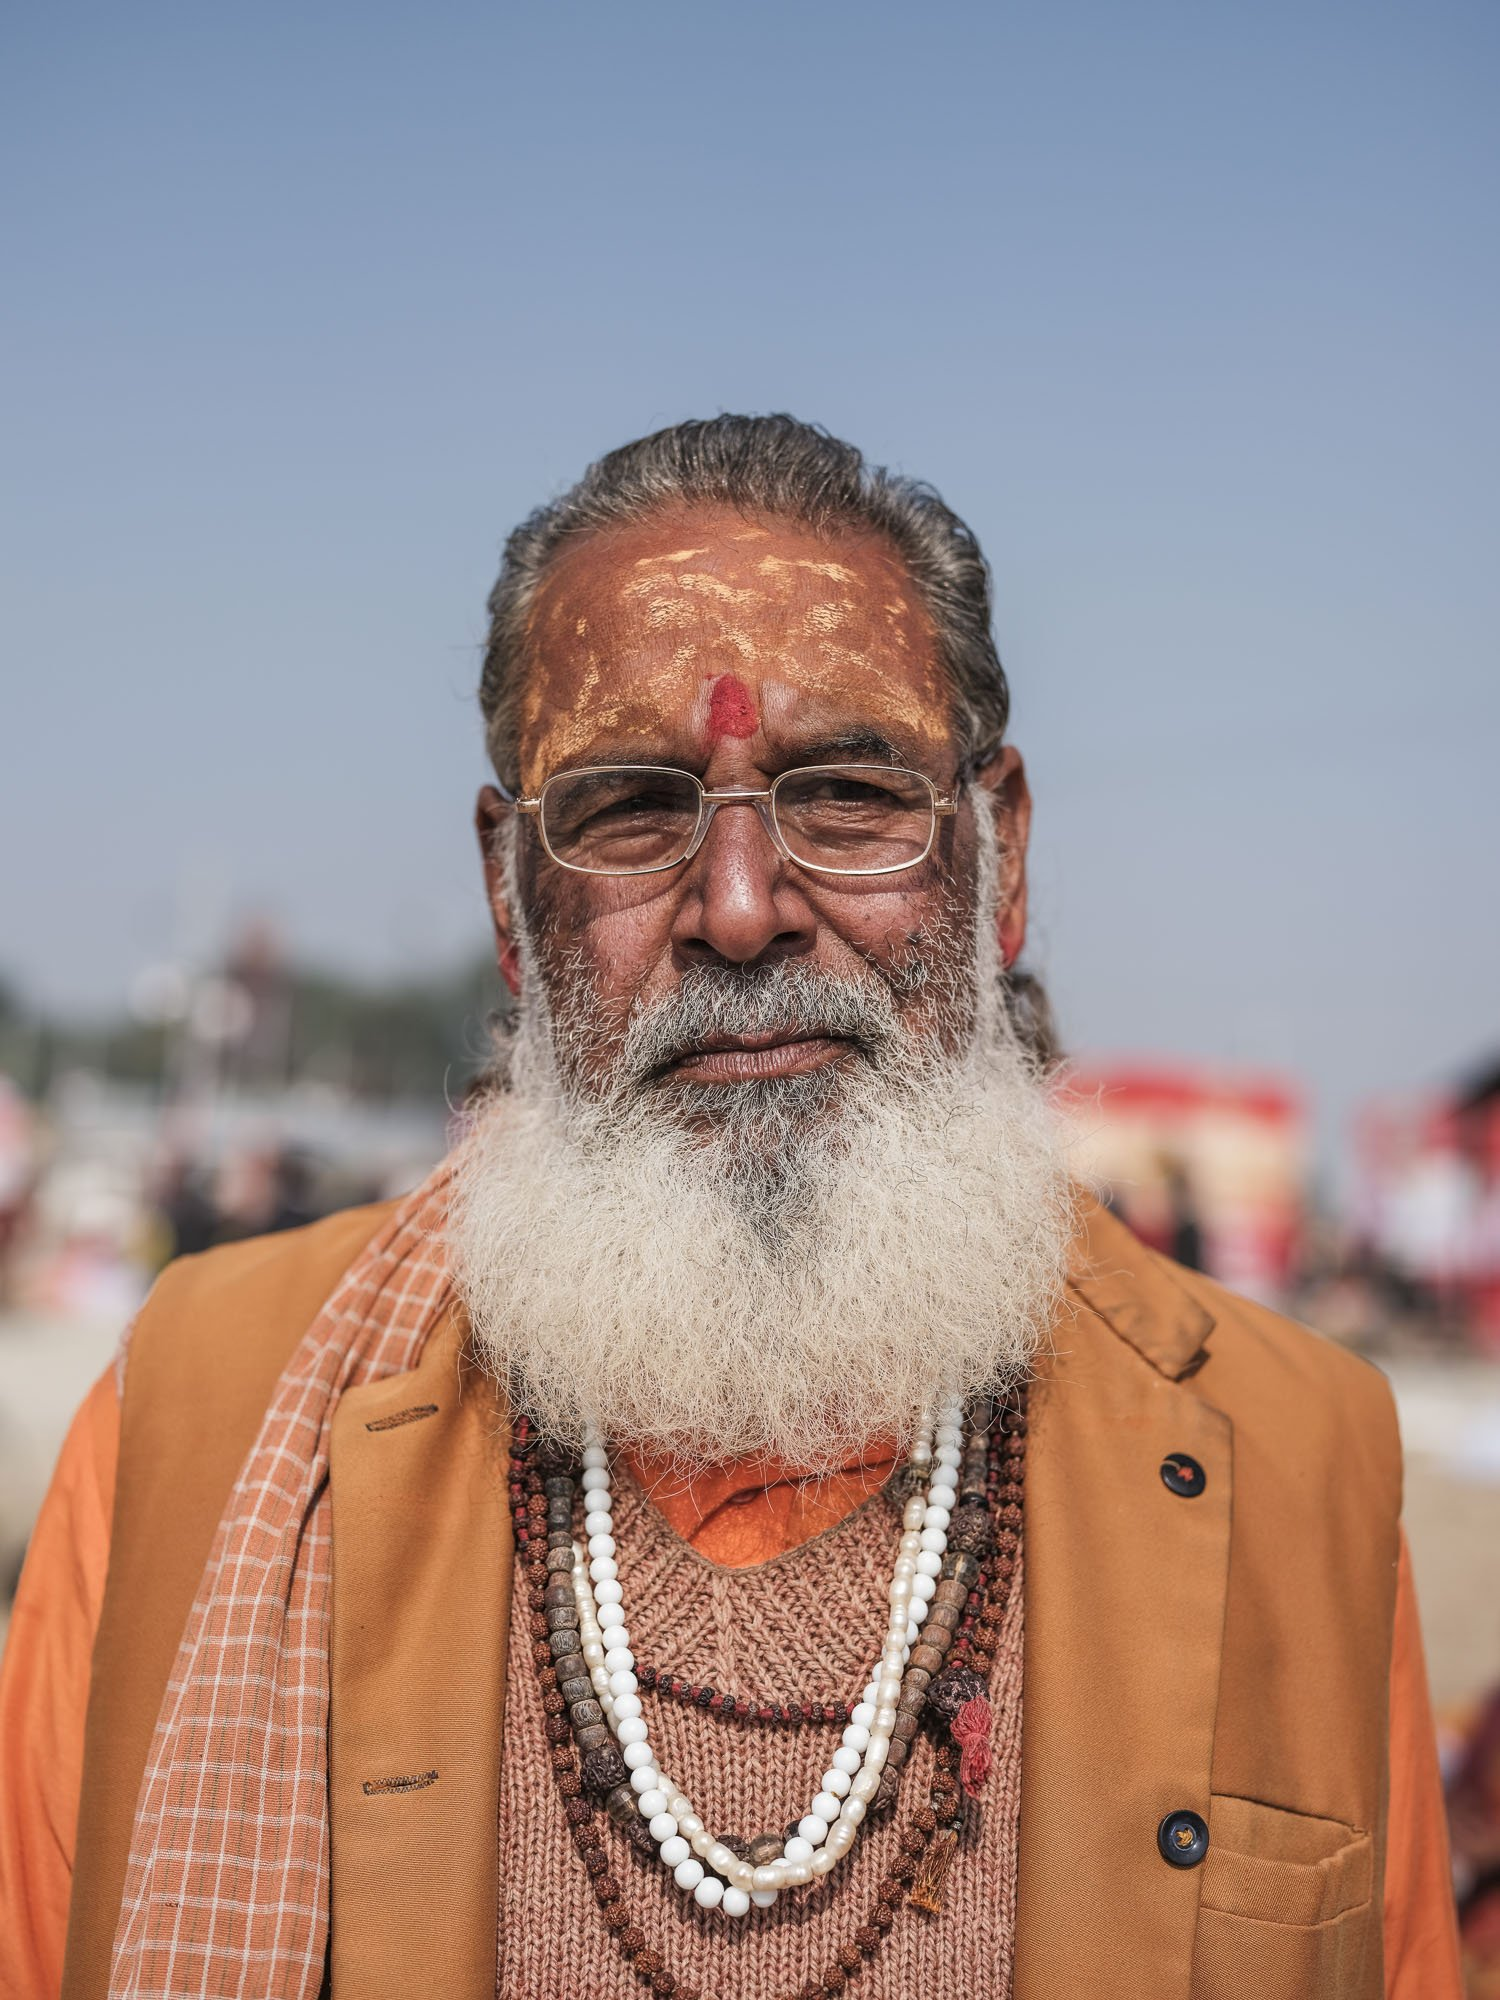 india man Kumbh mela orange beard Commercial Editorial Portraiture Documentary Photographer fujifilm Director Singapore Jose Jeuland photography fashion street hindu